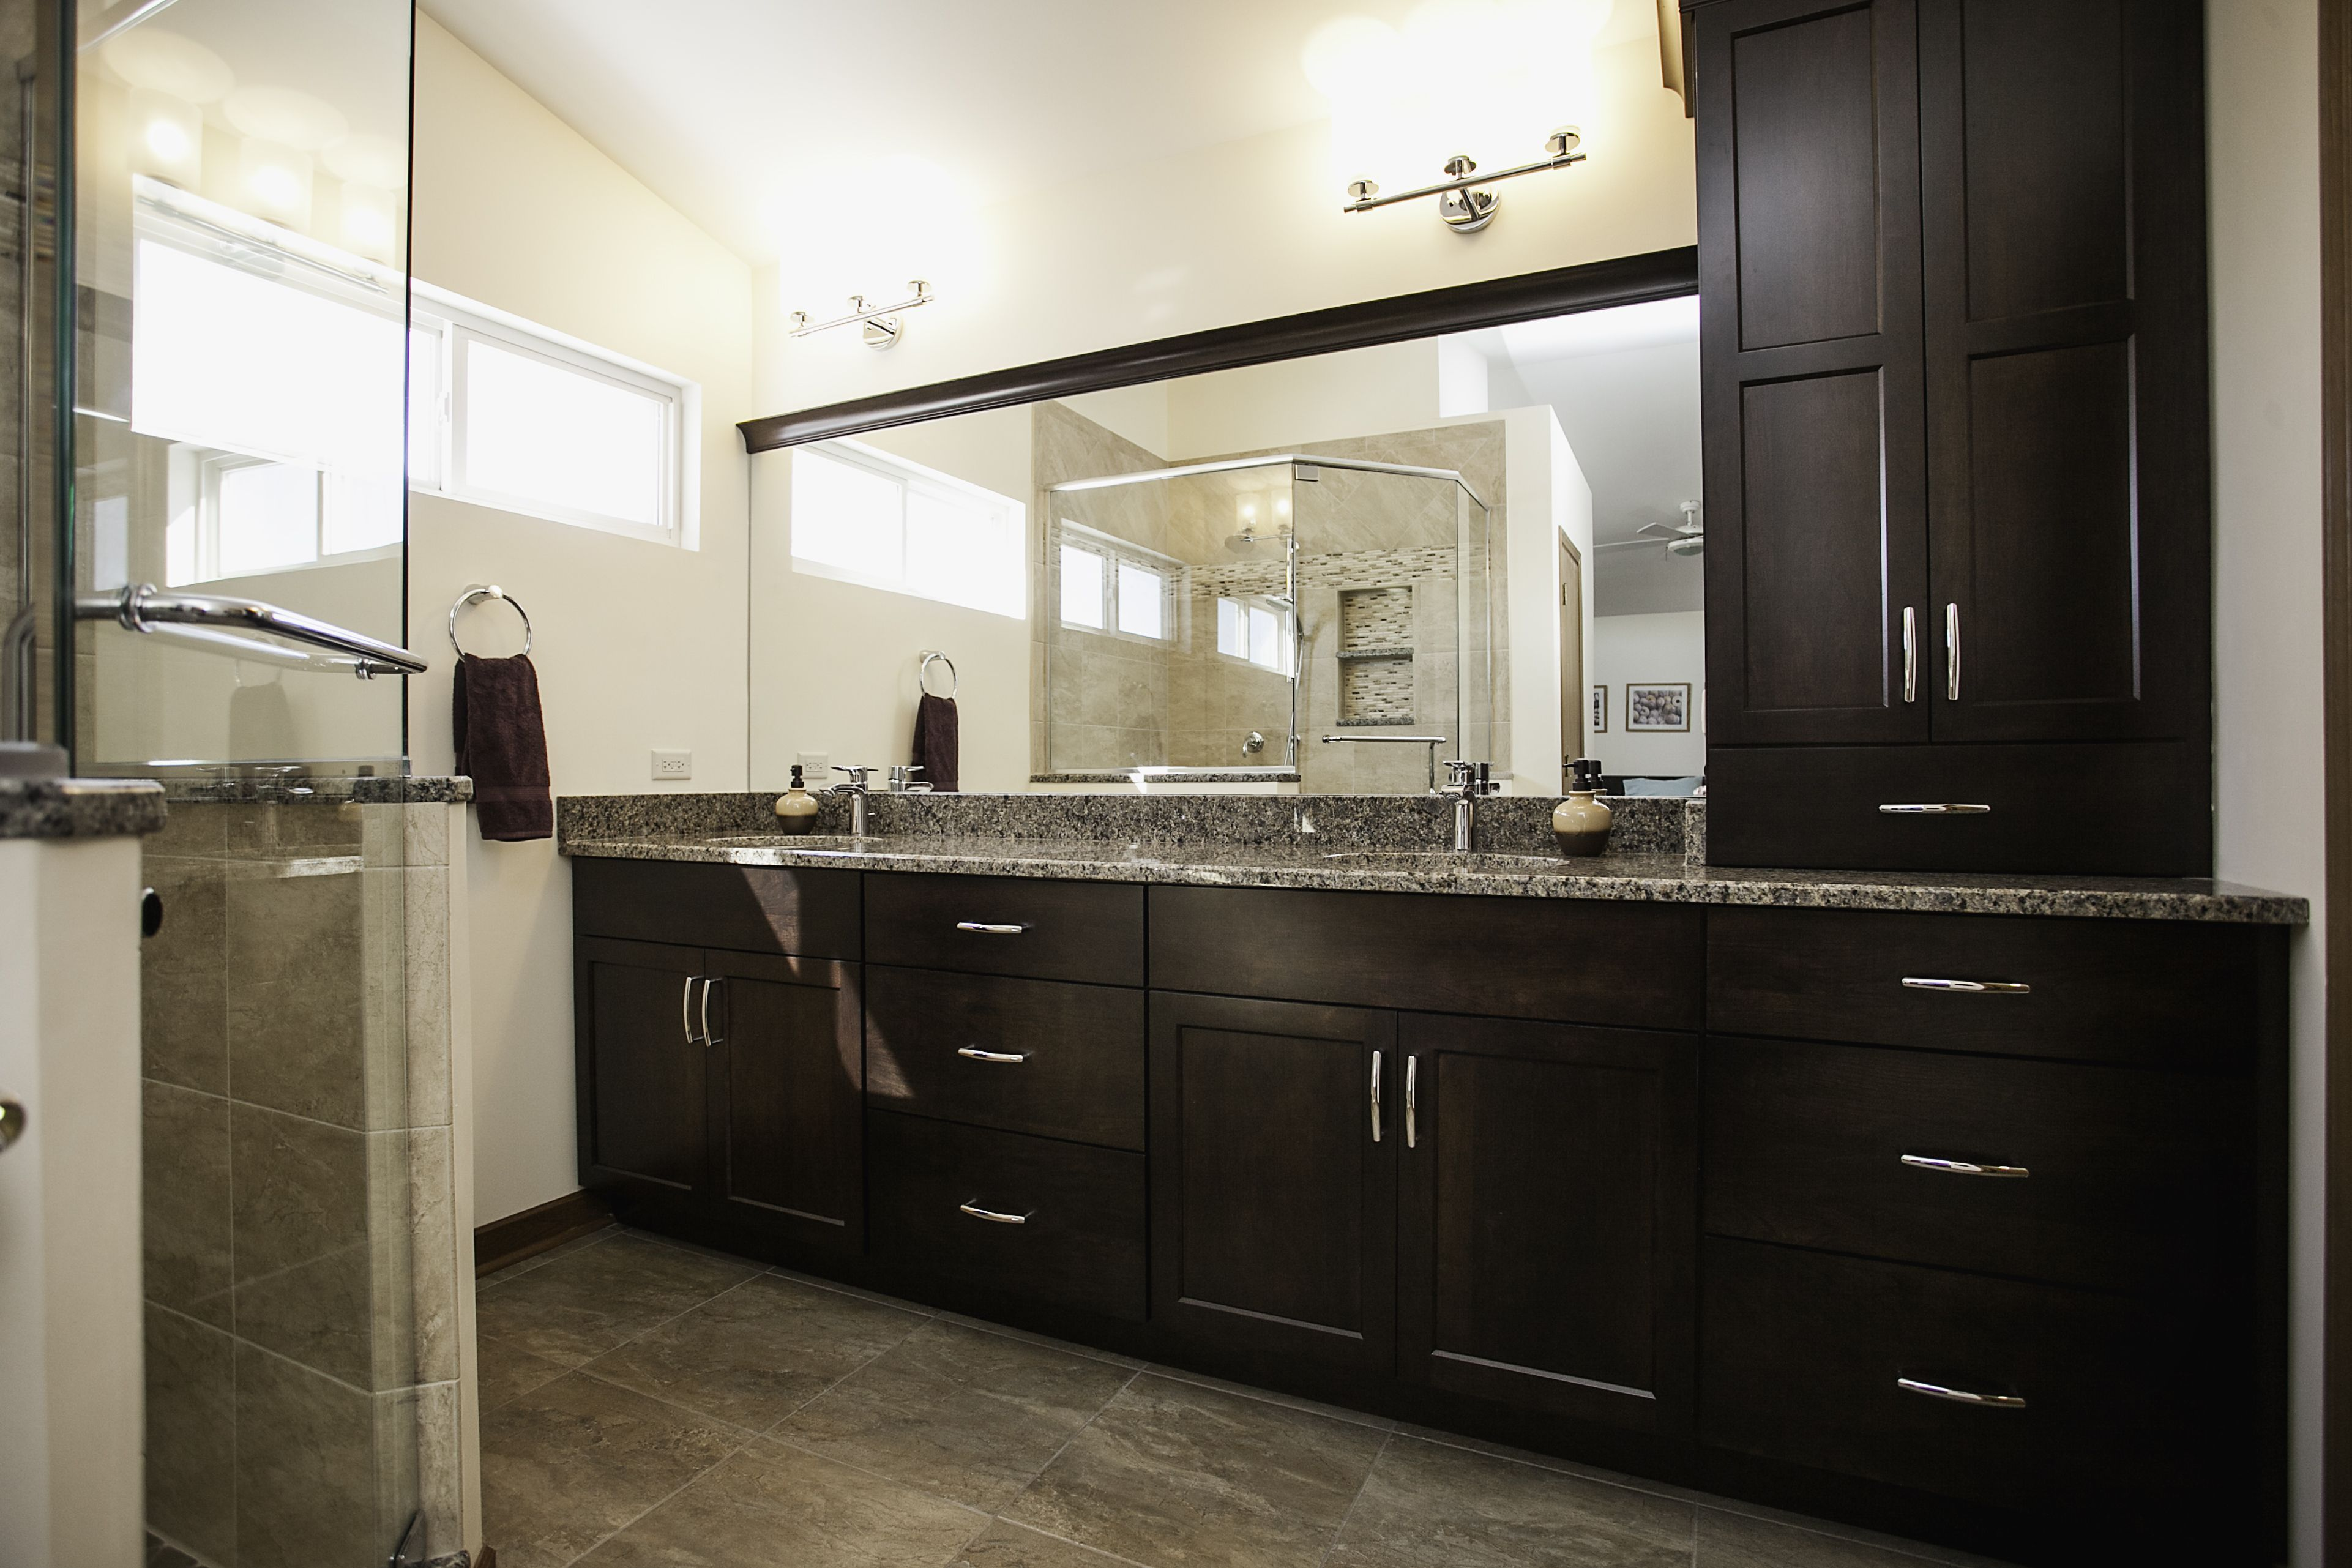 Bolingbrook Transitional Master Bath Extra Storage In Double Vanity And Tower Cabinet